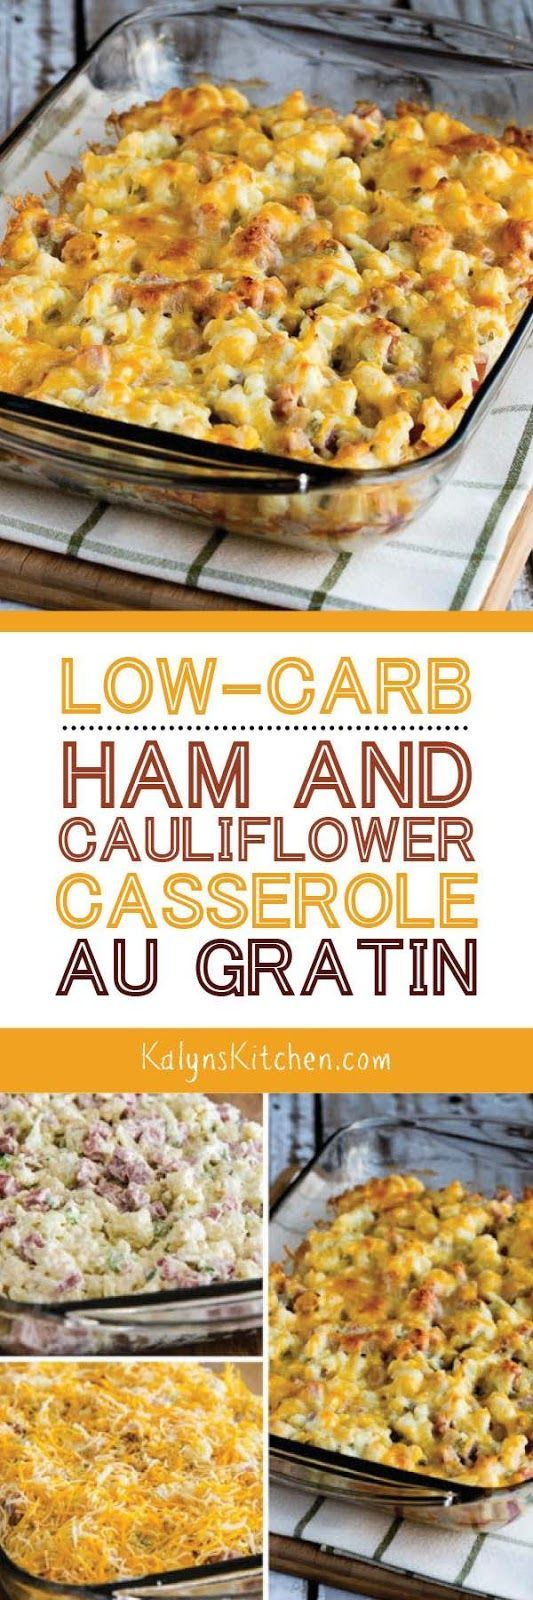 LOW-CARB HAM AND CAULIFLOWER CASSEROLE AU GRATIN